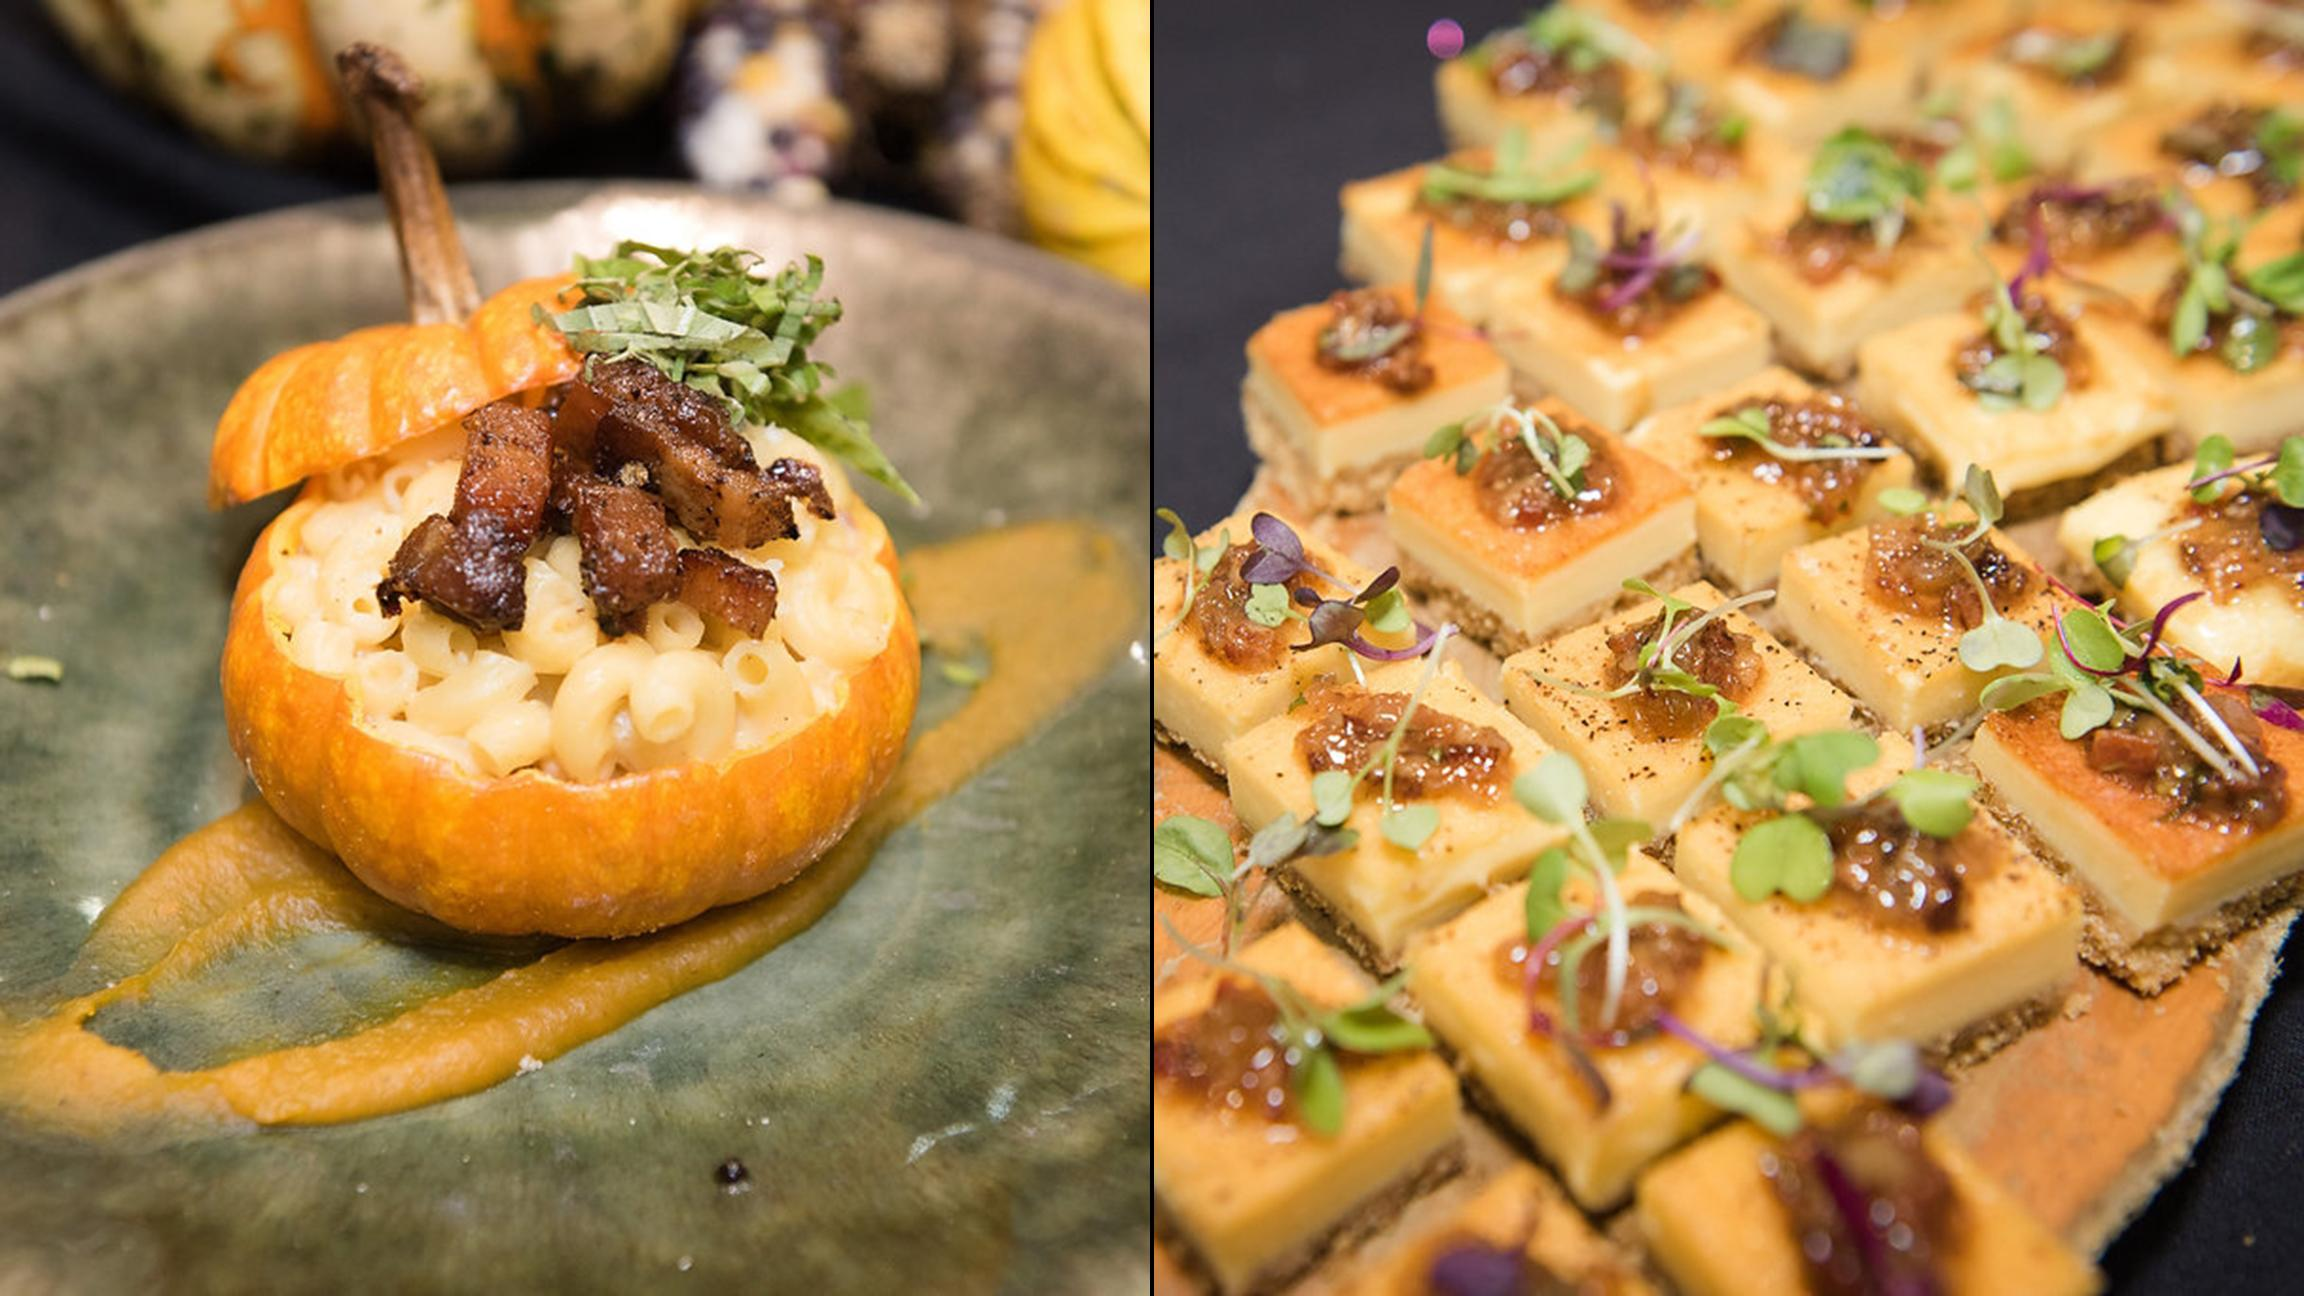 Not your mama's mac 'n' cheese: Gourmet options galore at this weekend's food fest. (Courtesy of Mac & Cheese Fest Chicago)